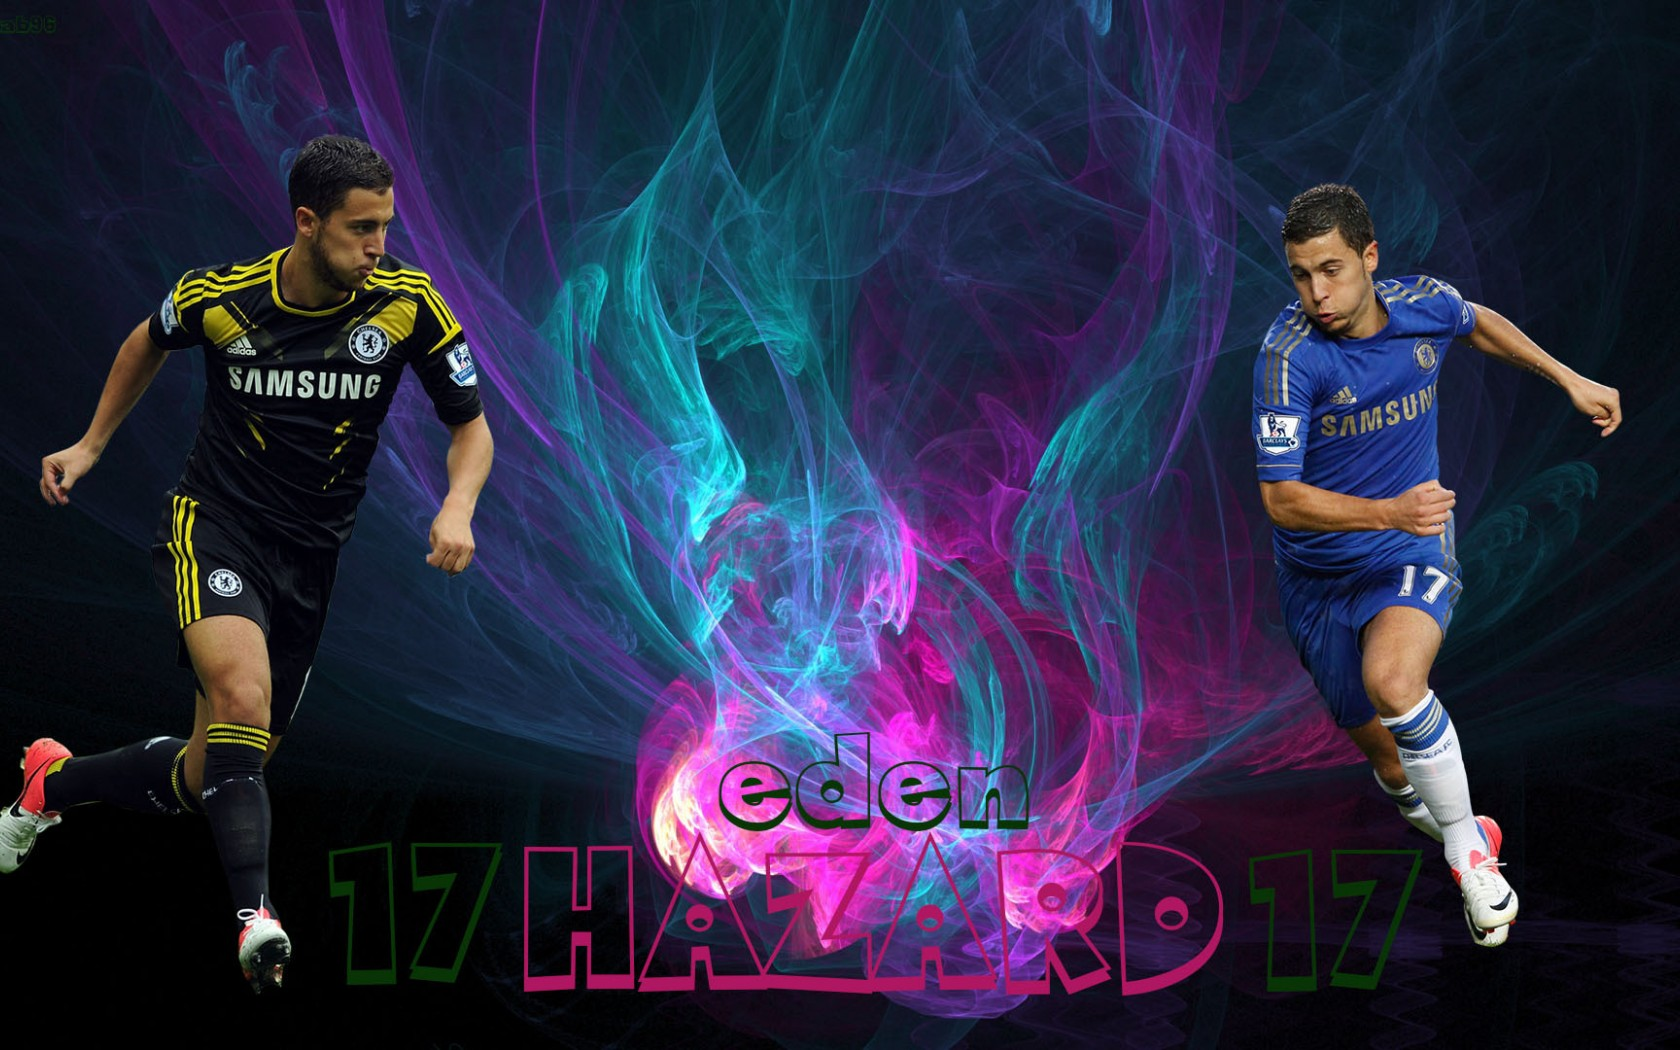 1680x1050 px - Hazard Wallpapers